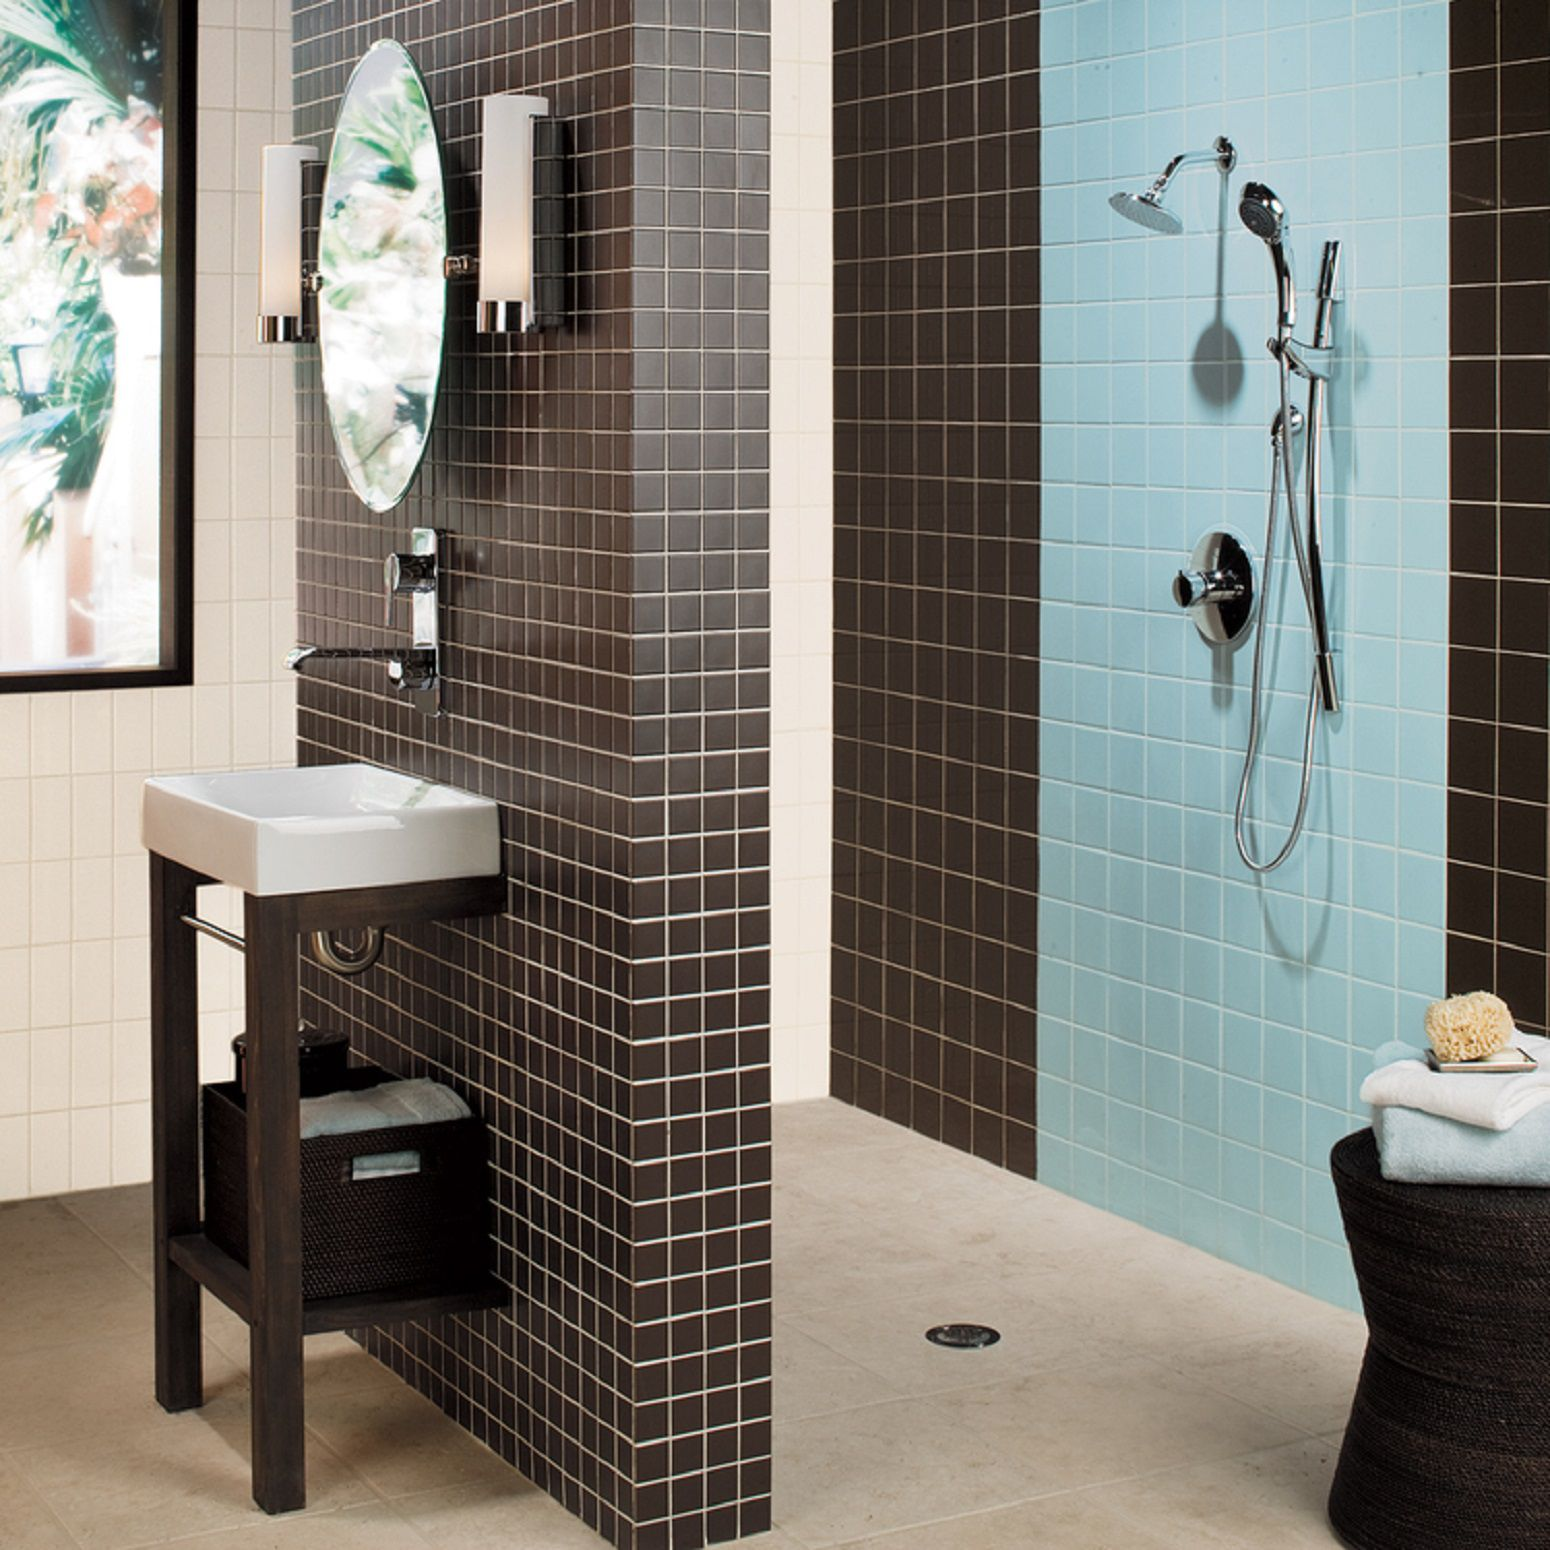 bathroom ceramic tile. 30 Bathroom Tile Ideas For a Fresh New Look The Best for Small Bathrooms